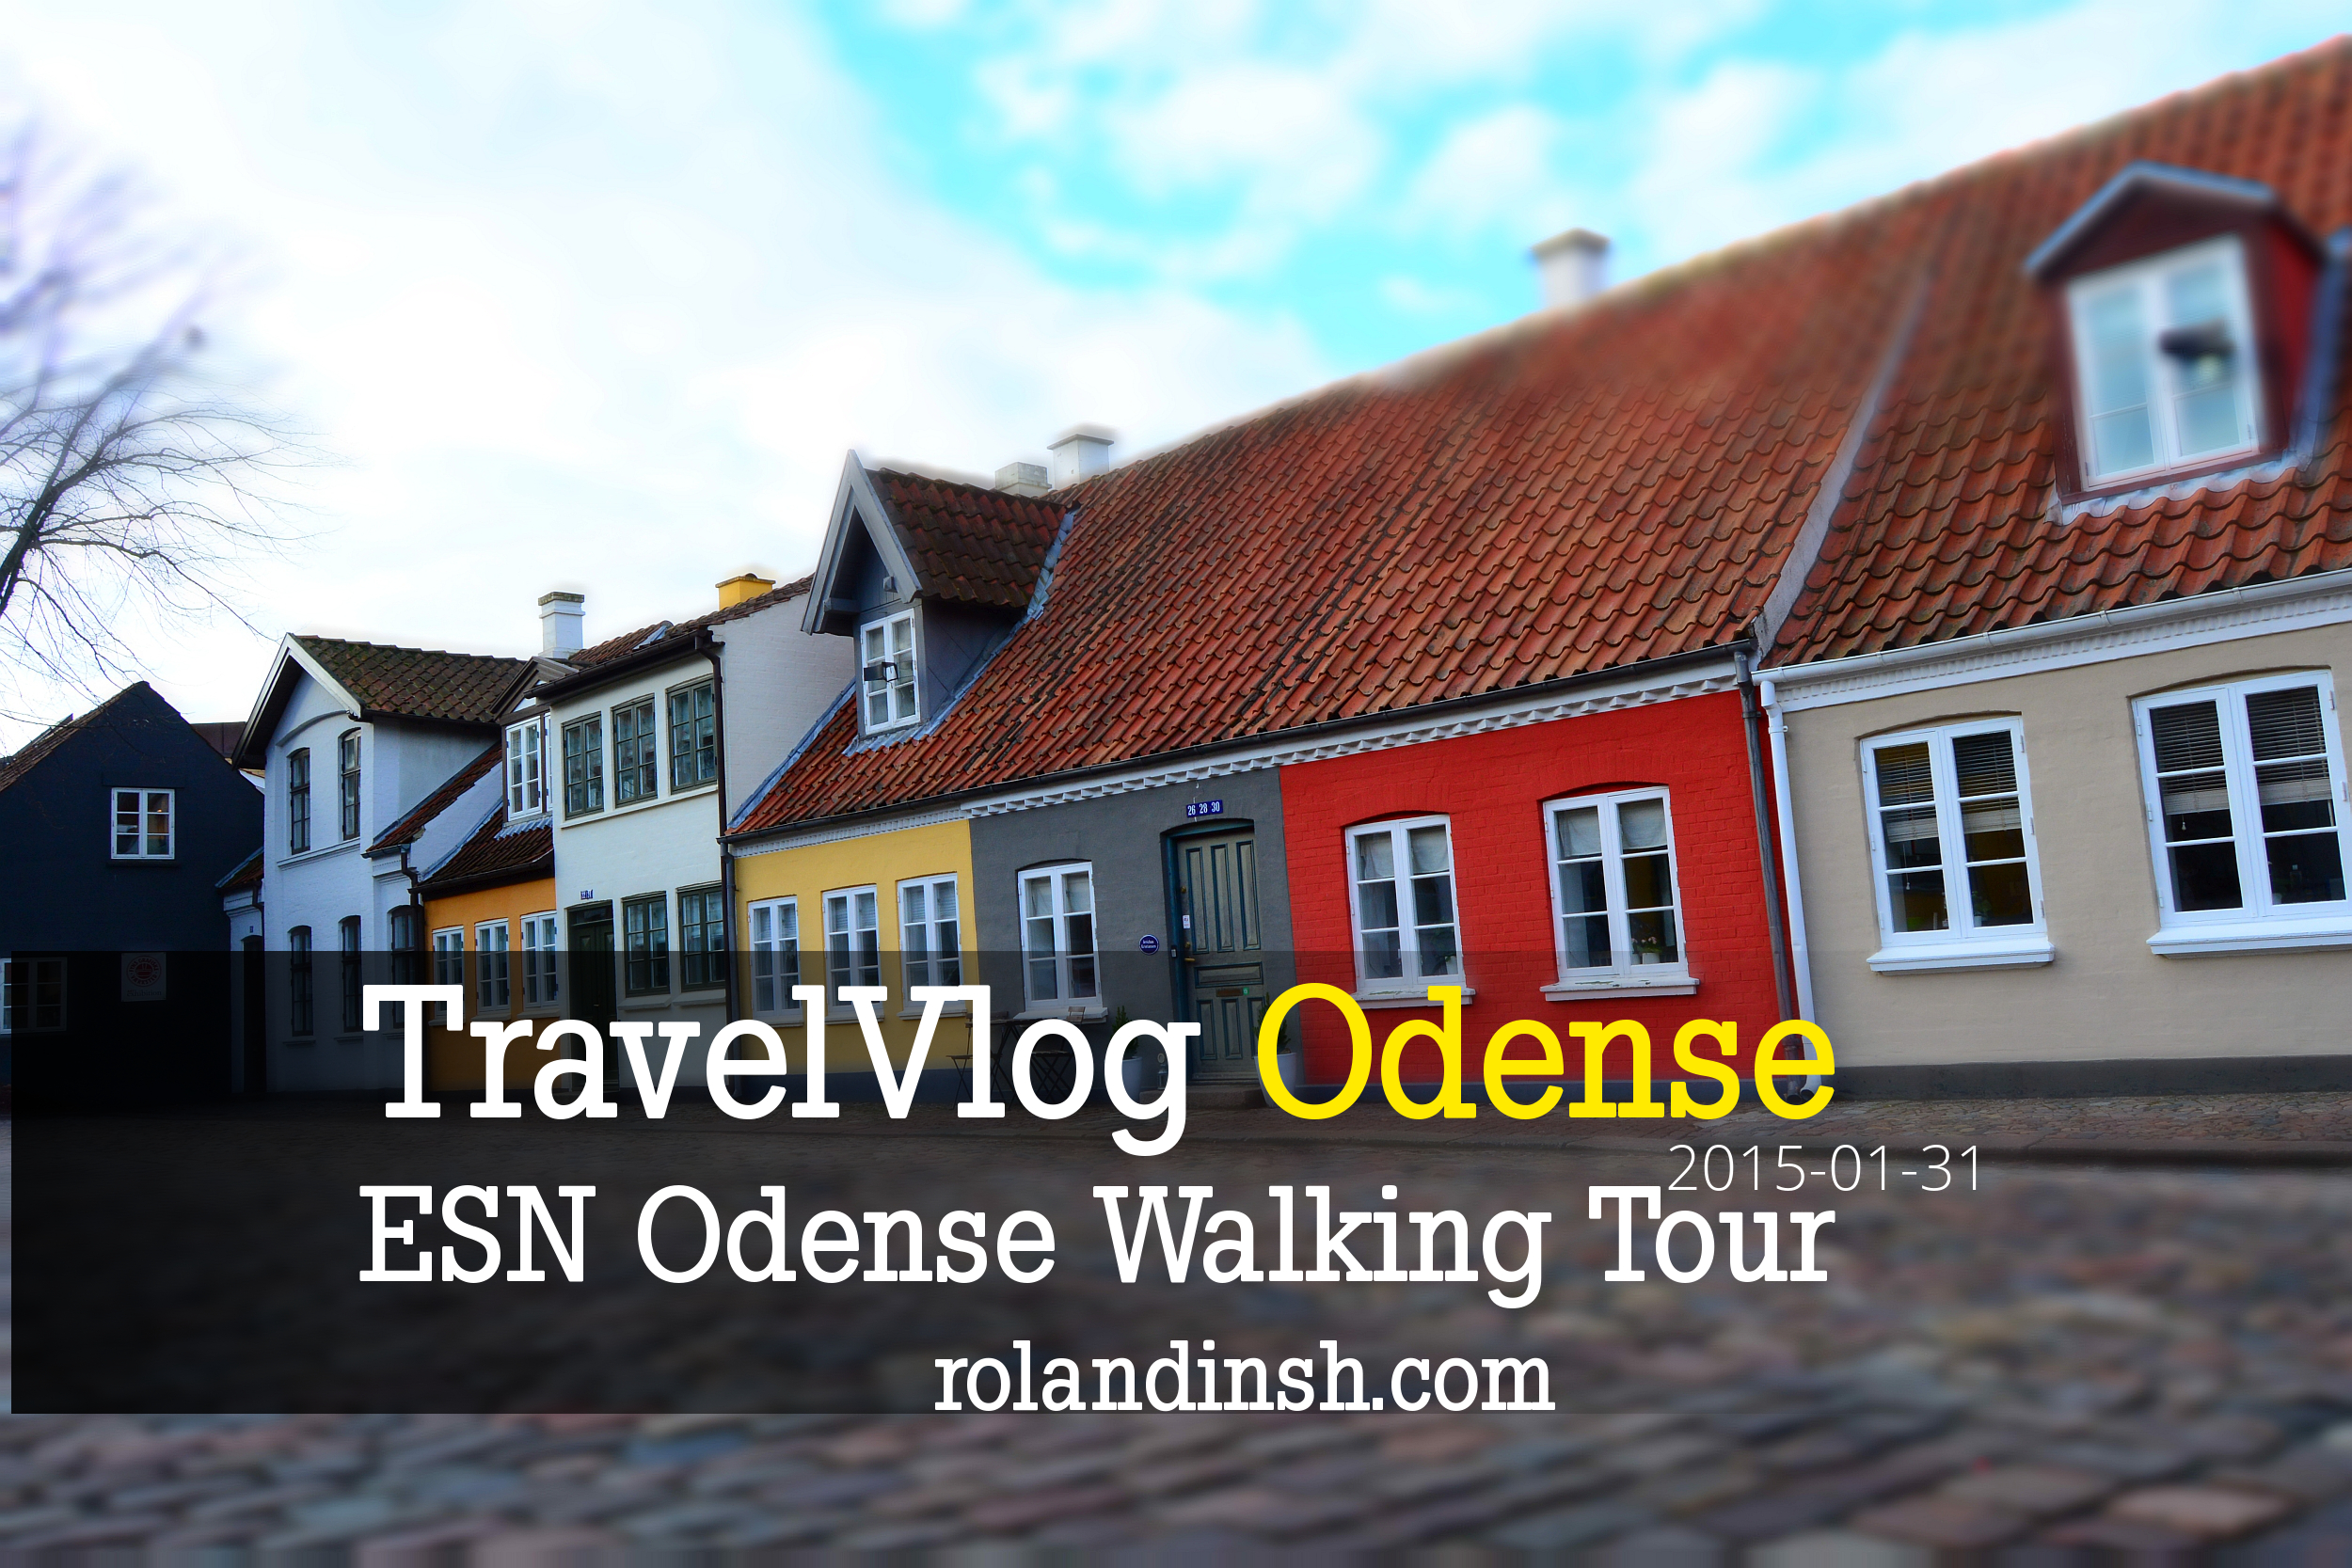 esn Odense city walk tour 2015 january